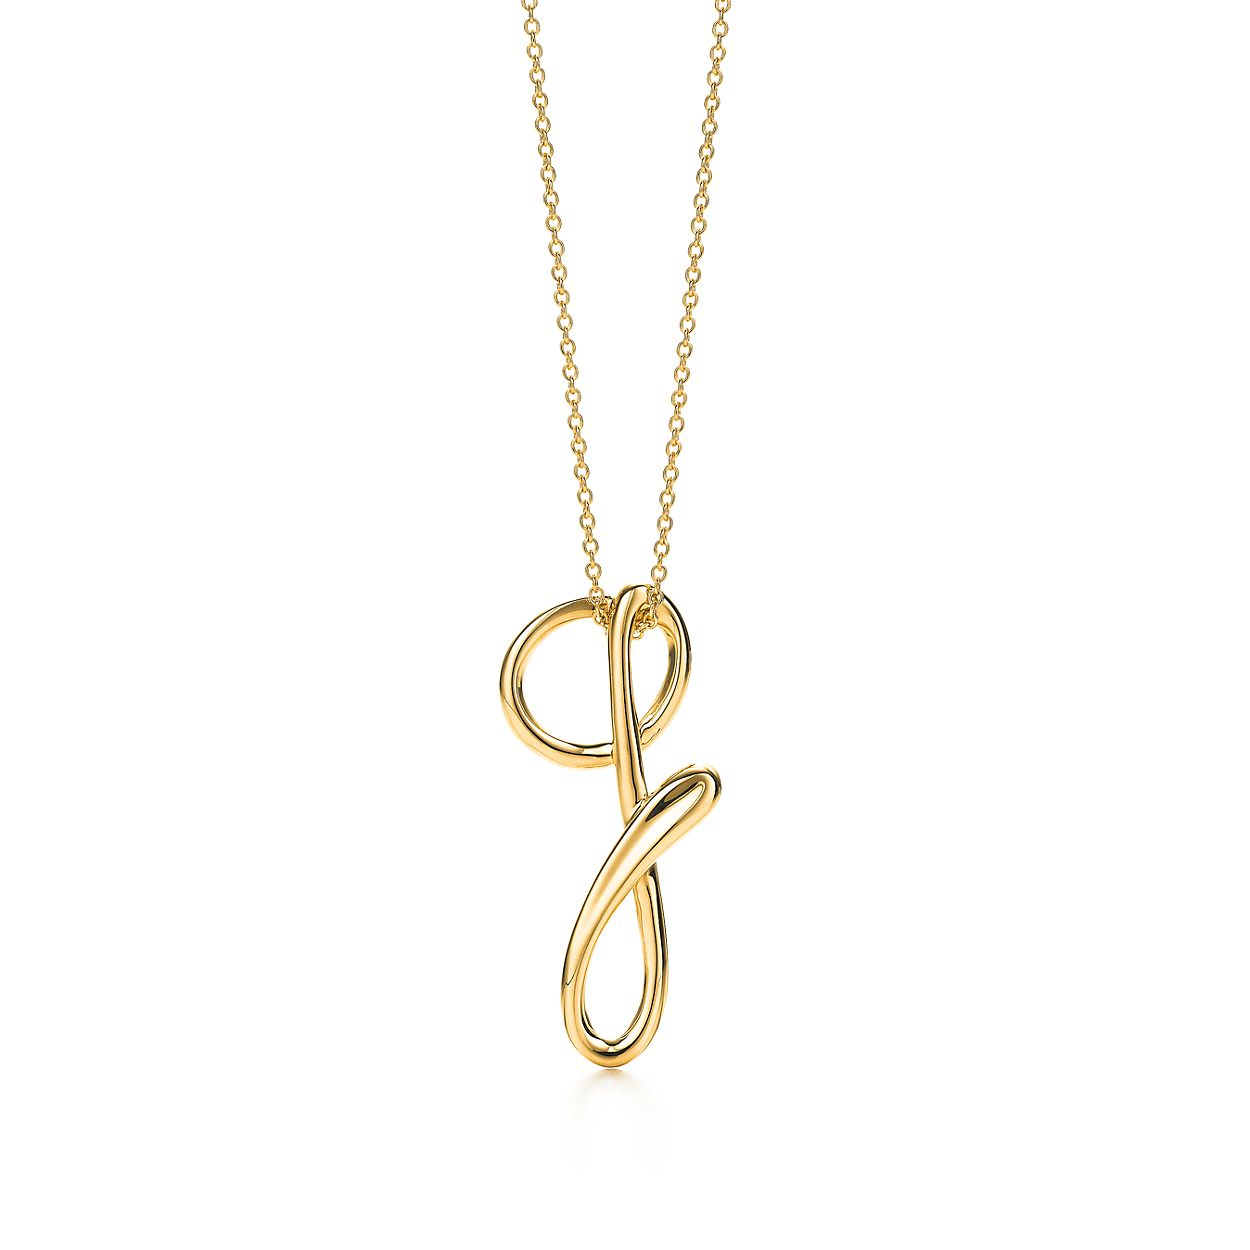 pendant alphabet women heart store with for dp in amaal gold brass buy amazon prices at necklace low s jewellery online india chain